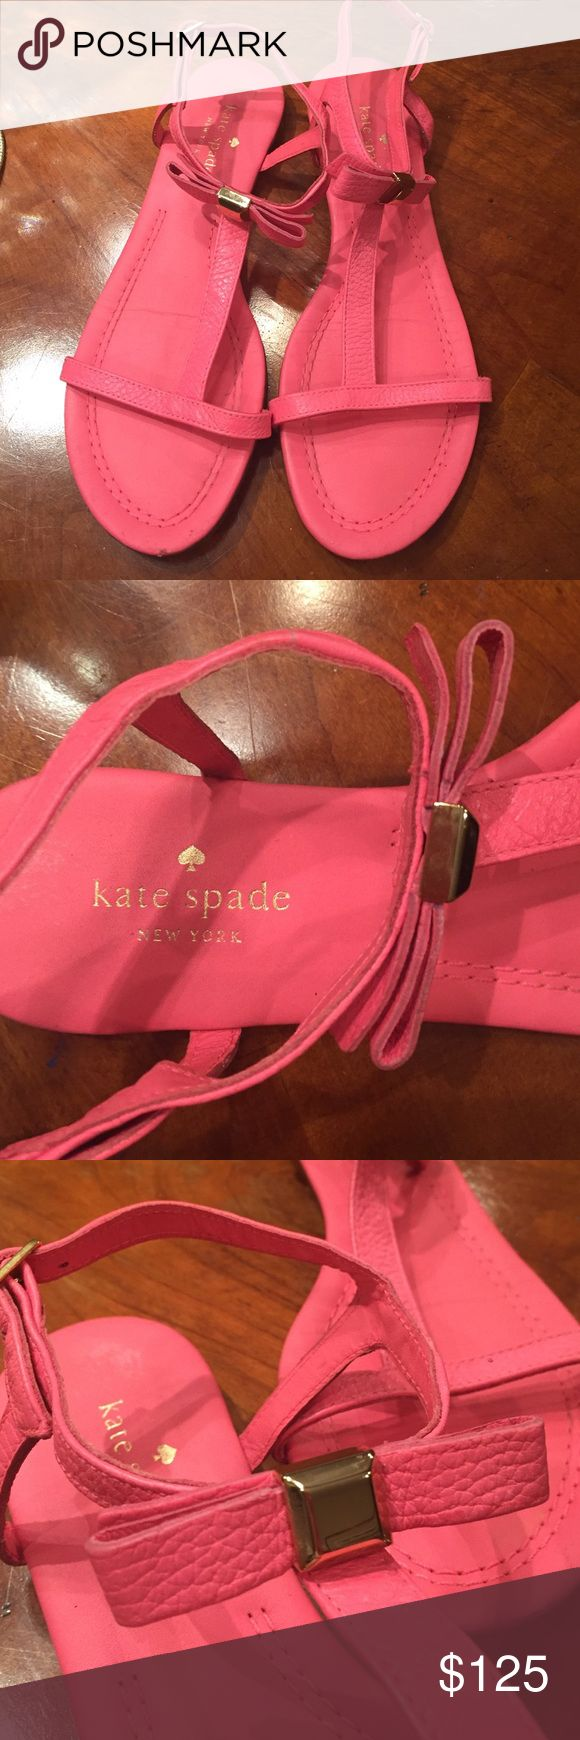 Kate Spade Bright Pink Bow Sandals Bright pink flat sandals with bow and gold accent kate spade Shoes Sandals